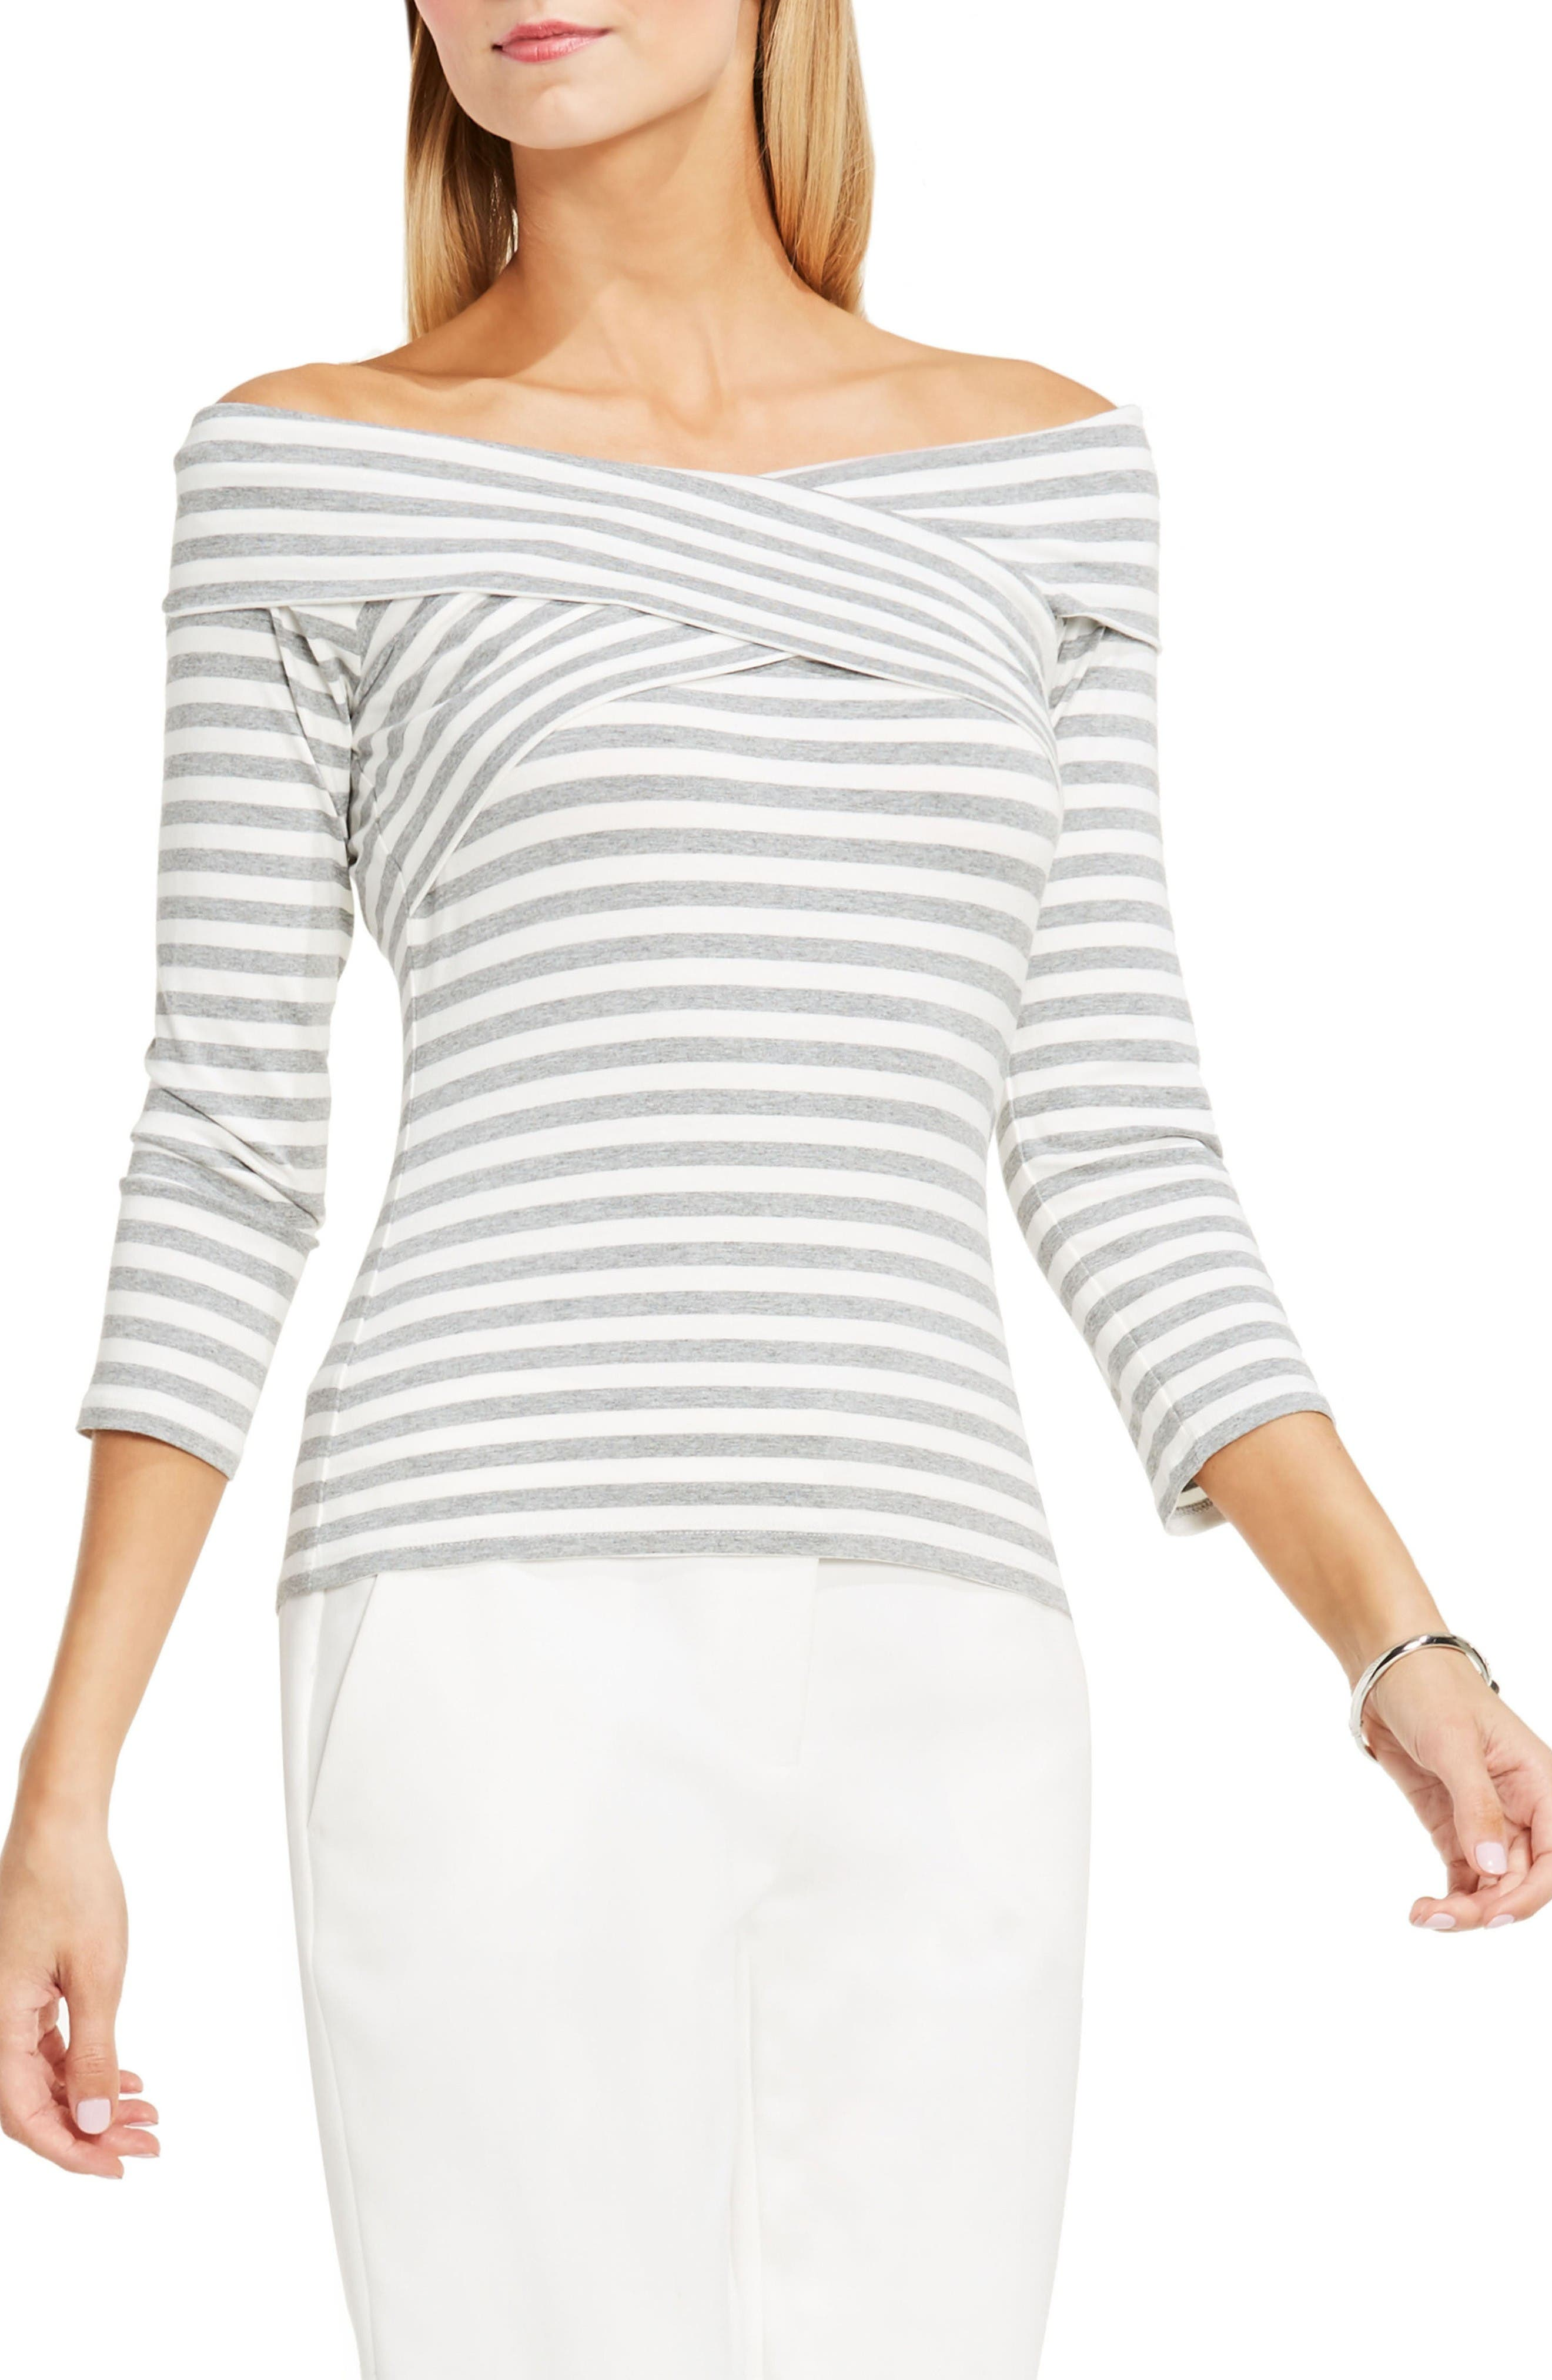 Alternate Image 1 Selected - Vince Camuto Stretch Knit Off the Shoulder Top